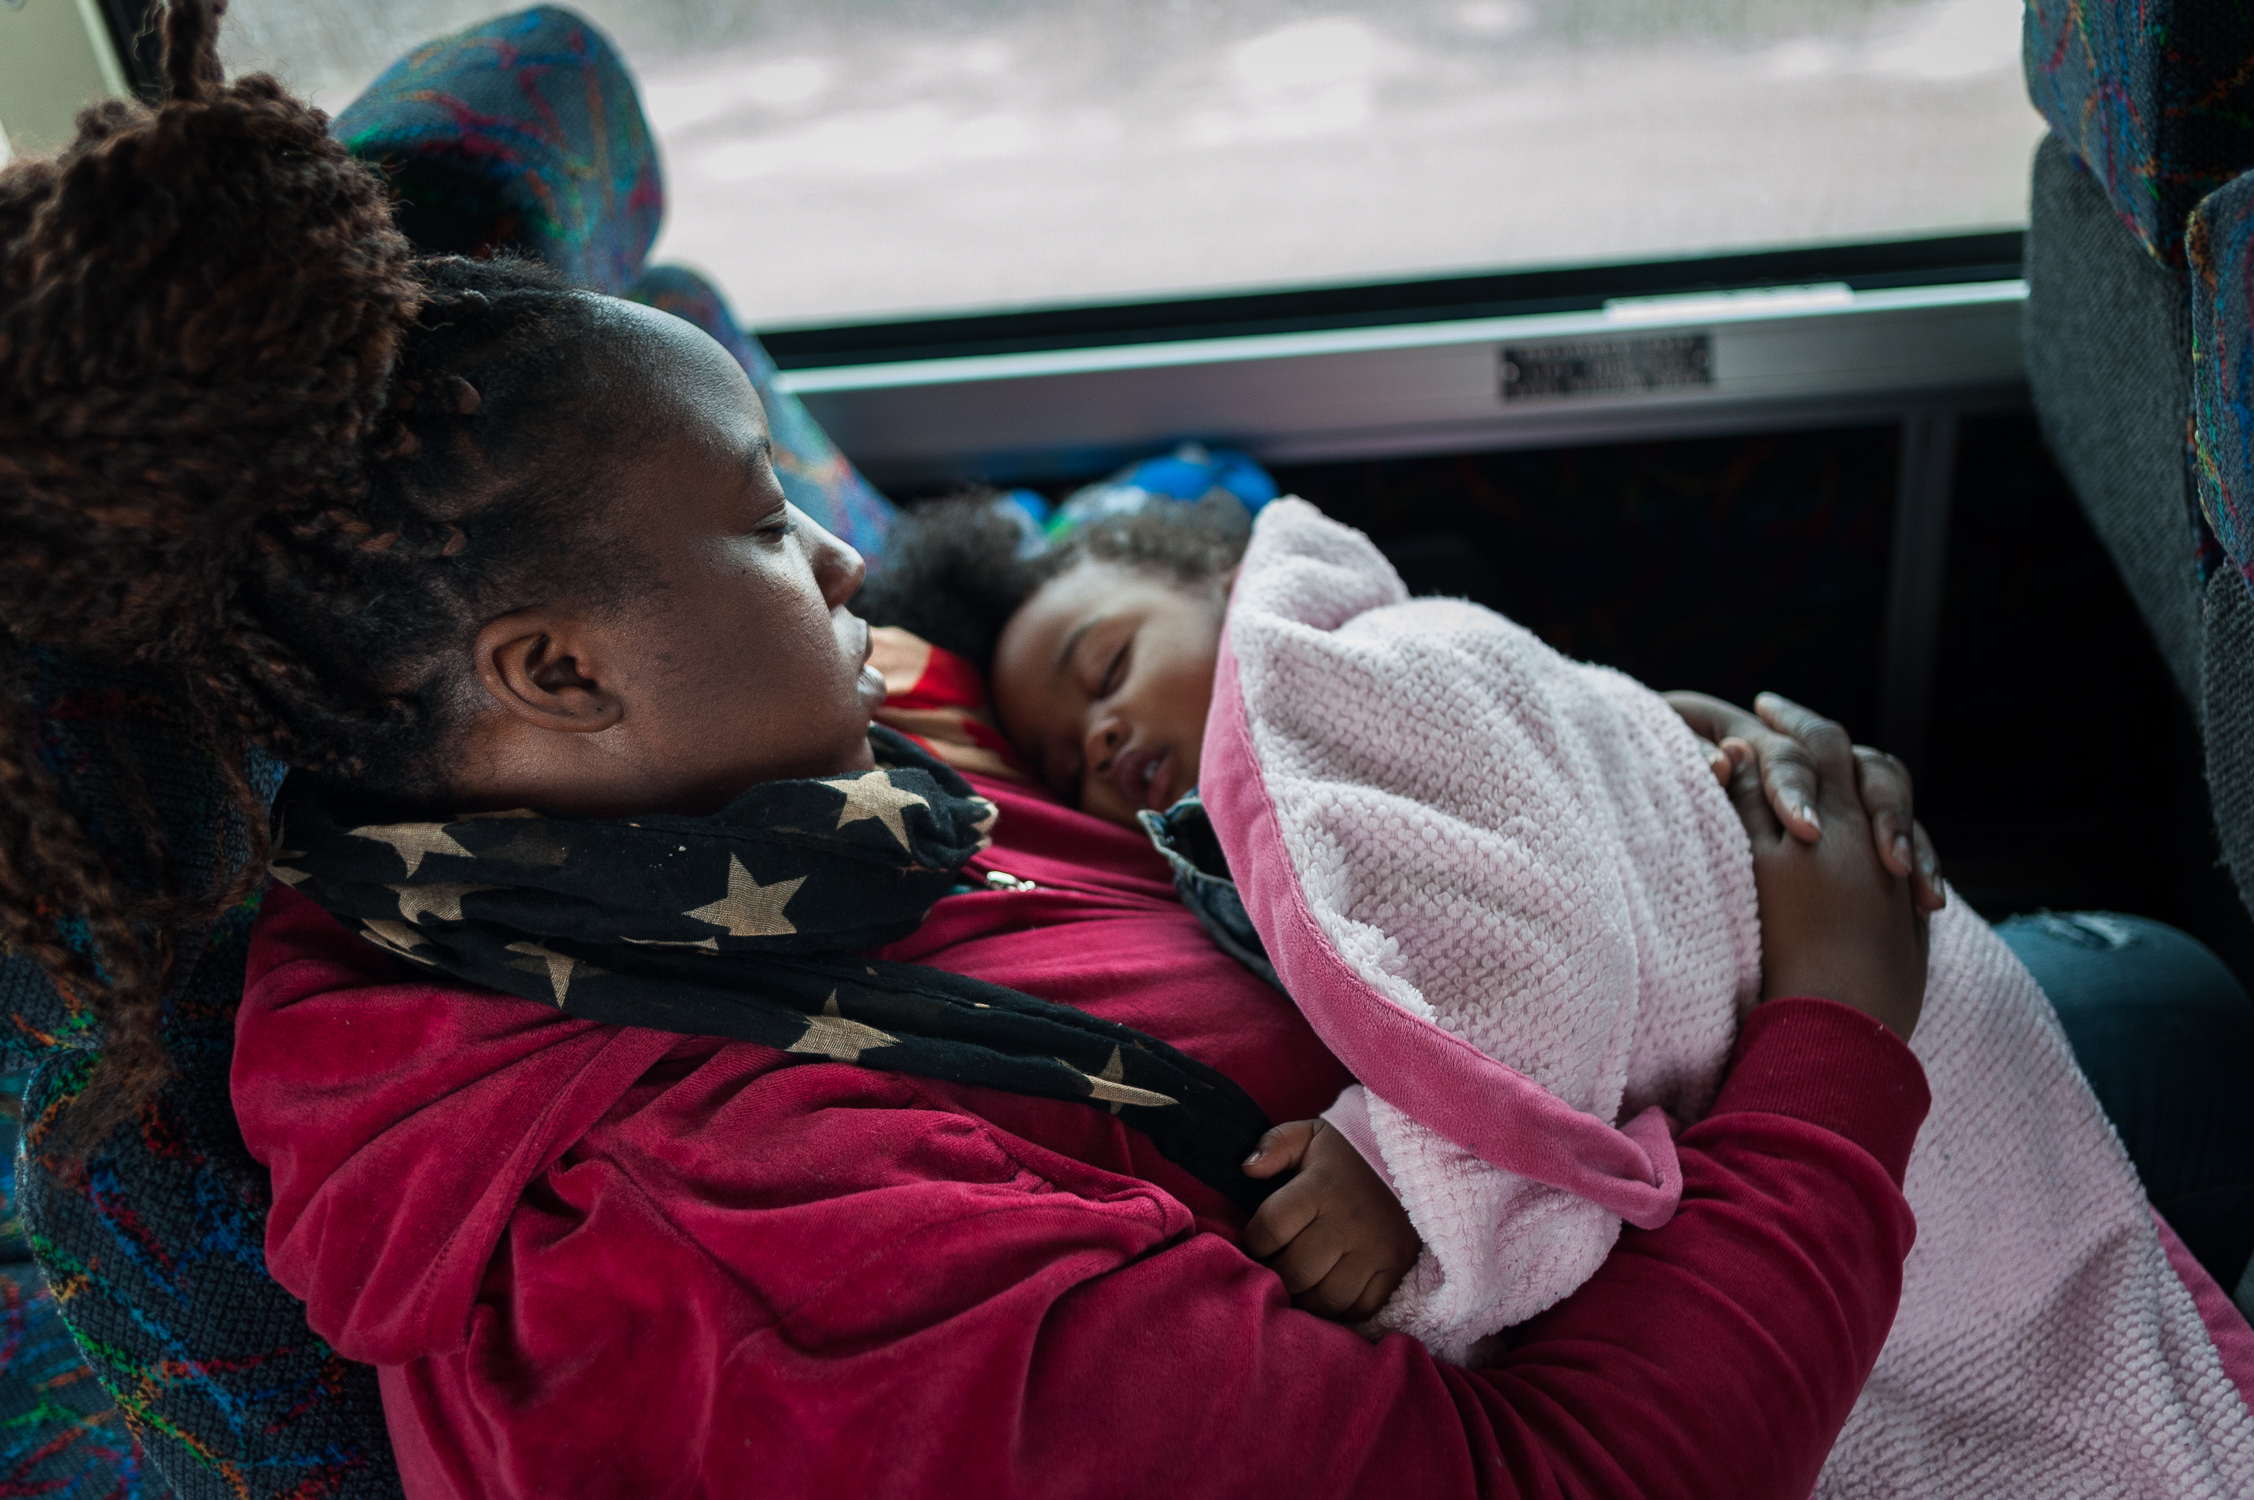 """Candis, 31, and her daughter Camryn, 1, on the way home from visiting John, Camryn's father, at the Wyoming Correctional facility on this day trip. Camryn was conceived during a so called """"trailer"""" visit, one of the weekend visits that exist at many maximum security prisons. March 15, 2014."""